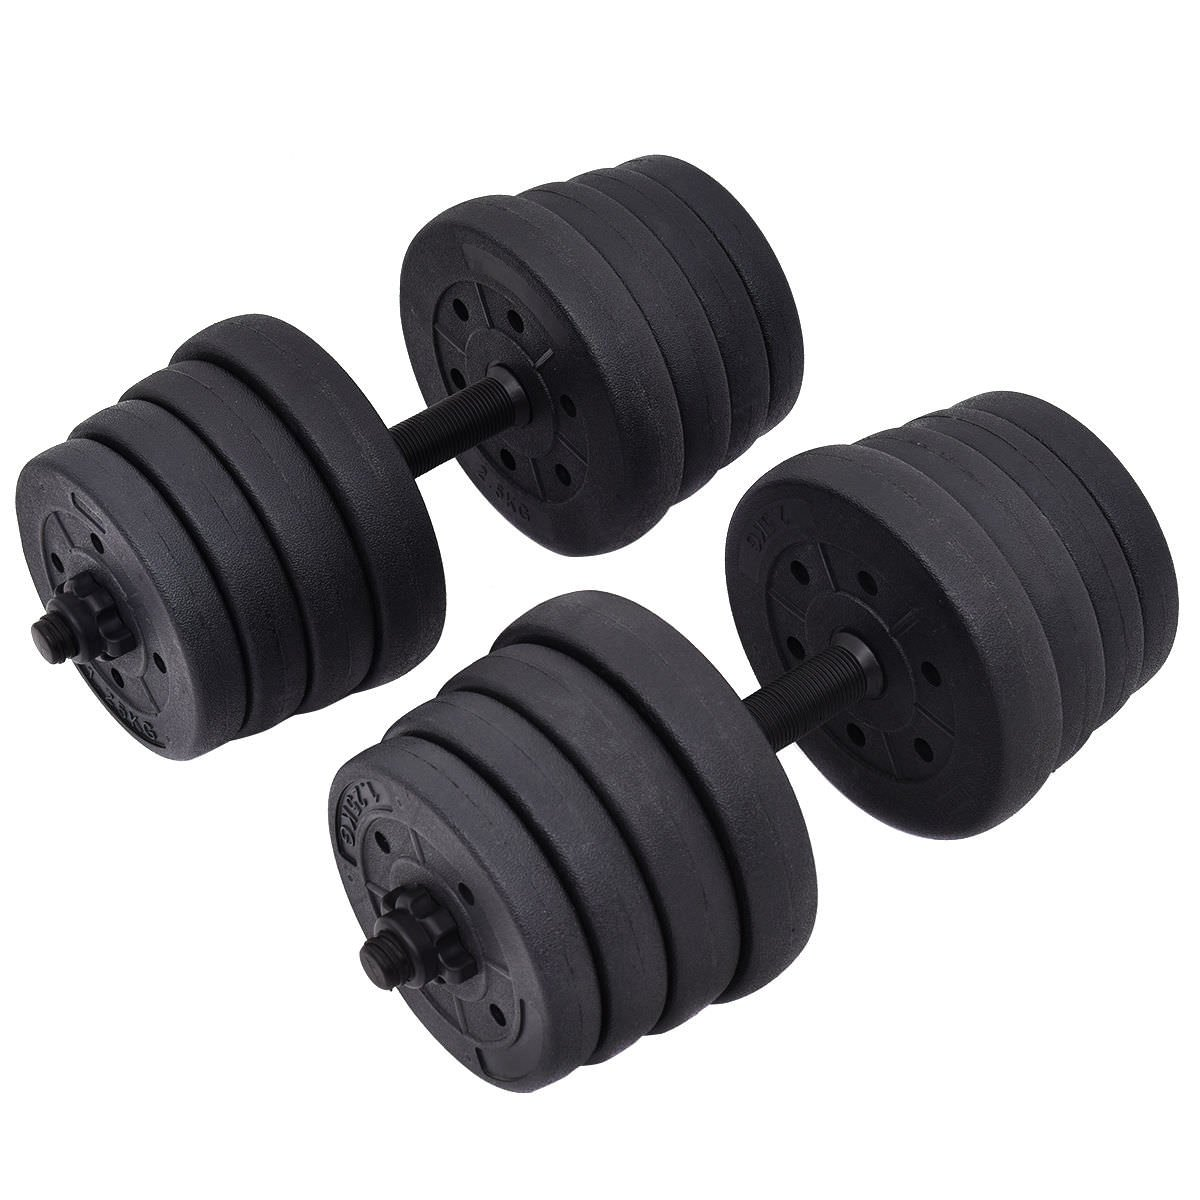 Giantex 66LB Weight Dumbbell Set